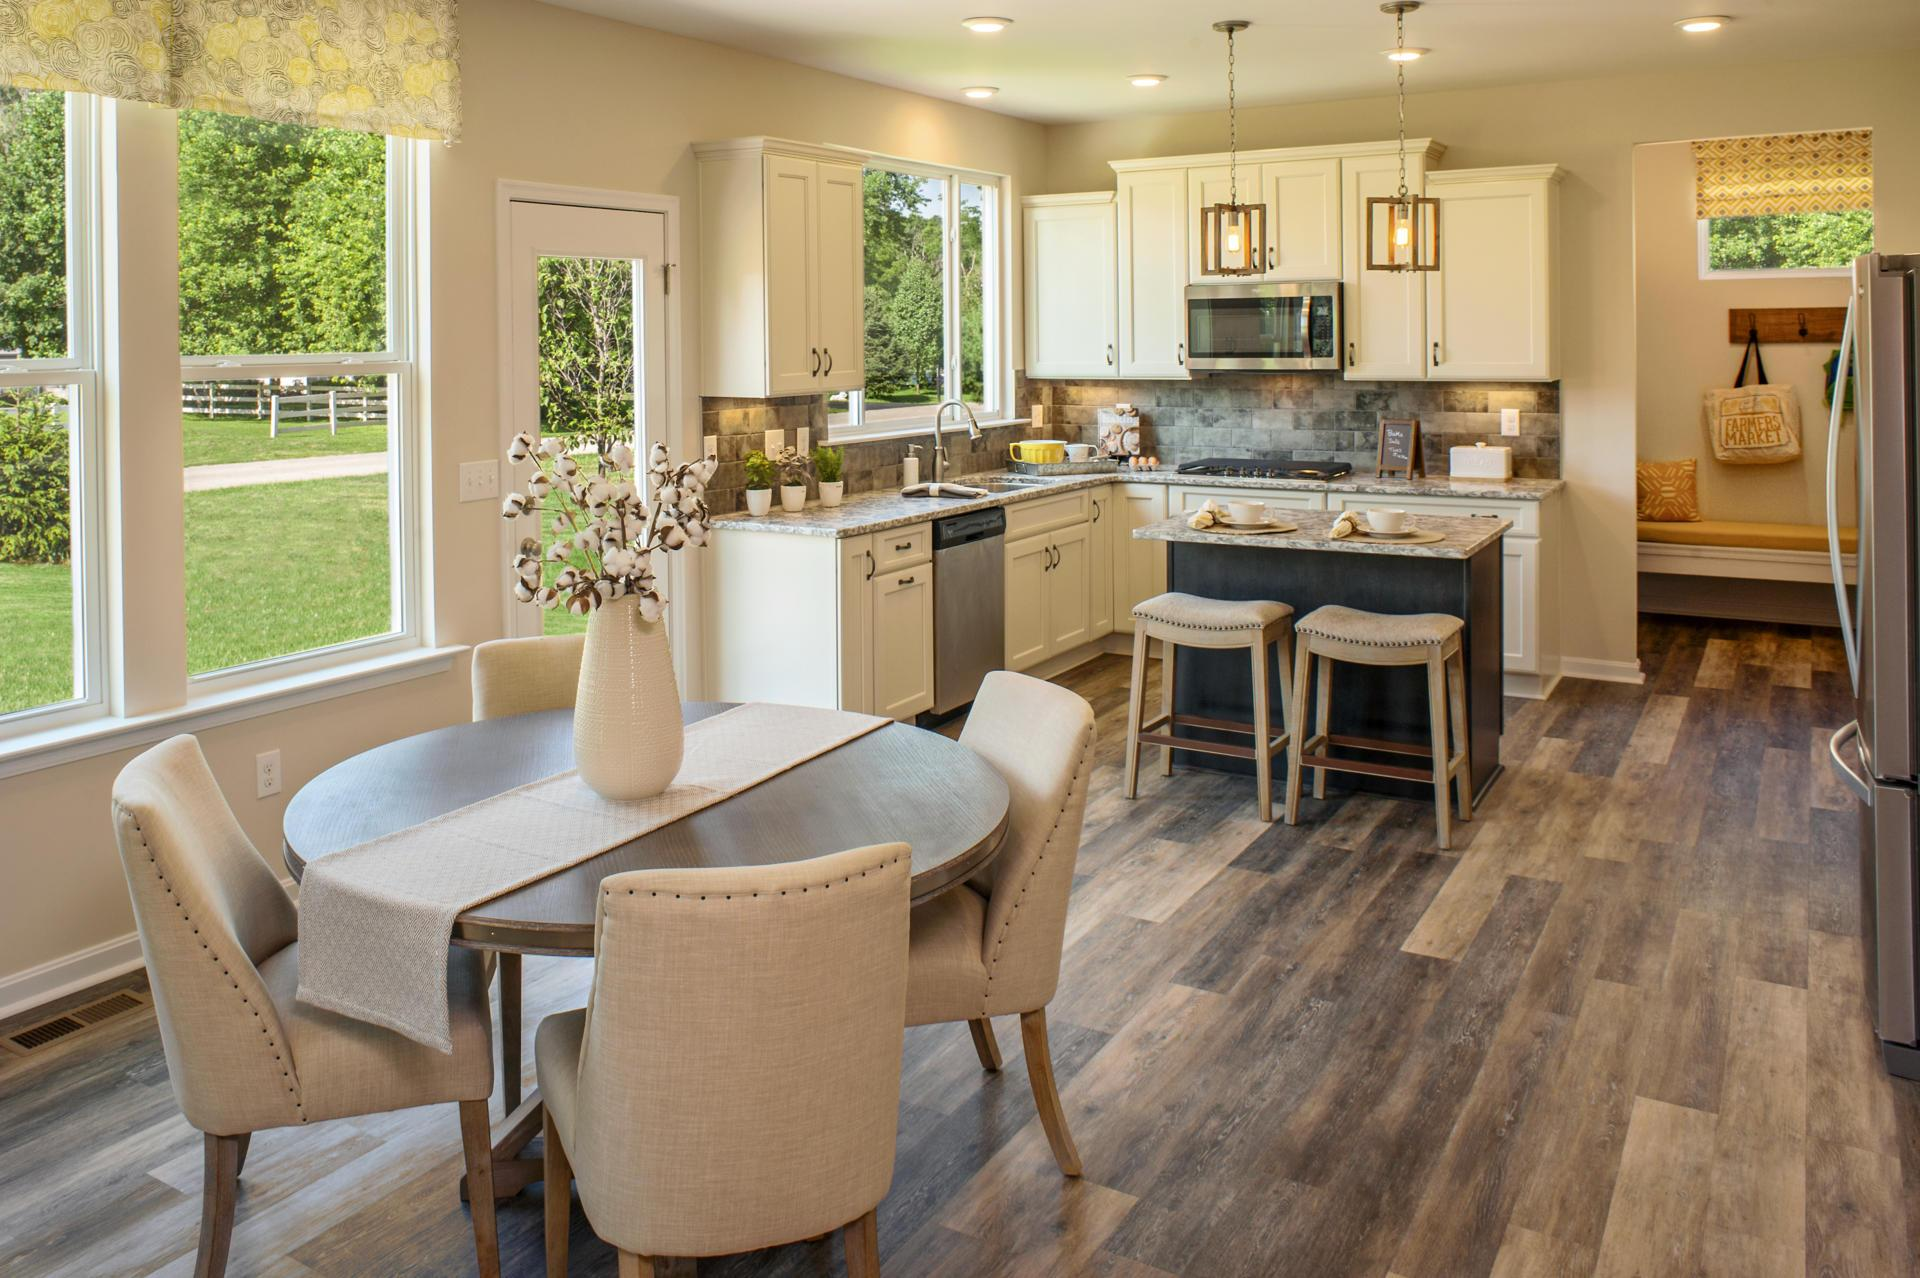 Kitchen featured in the Quentin By Drees Homes in Cincinnati, OH